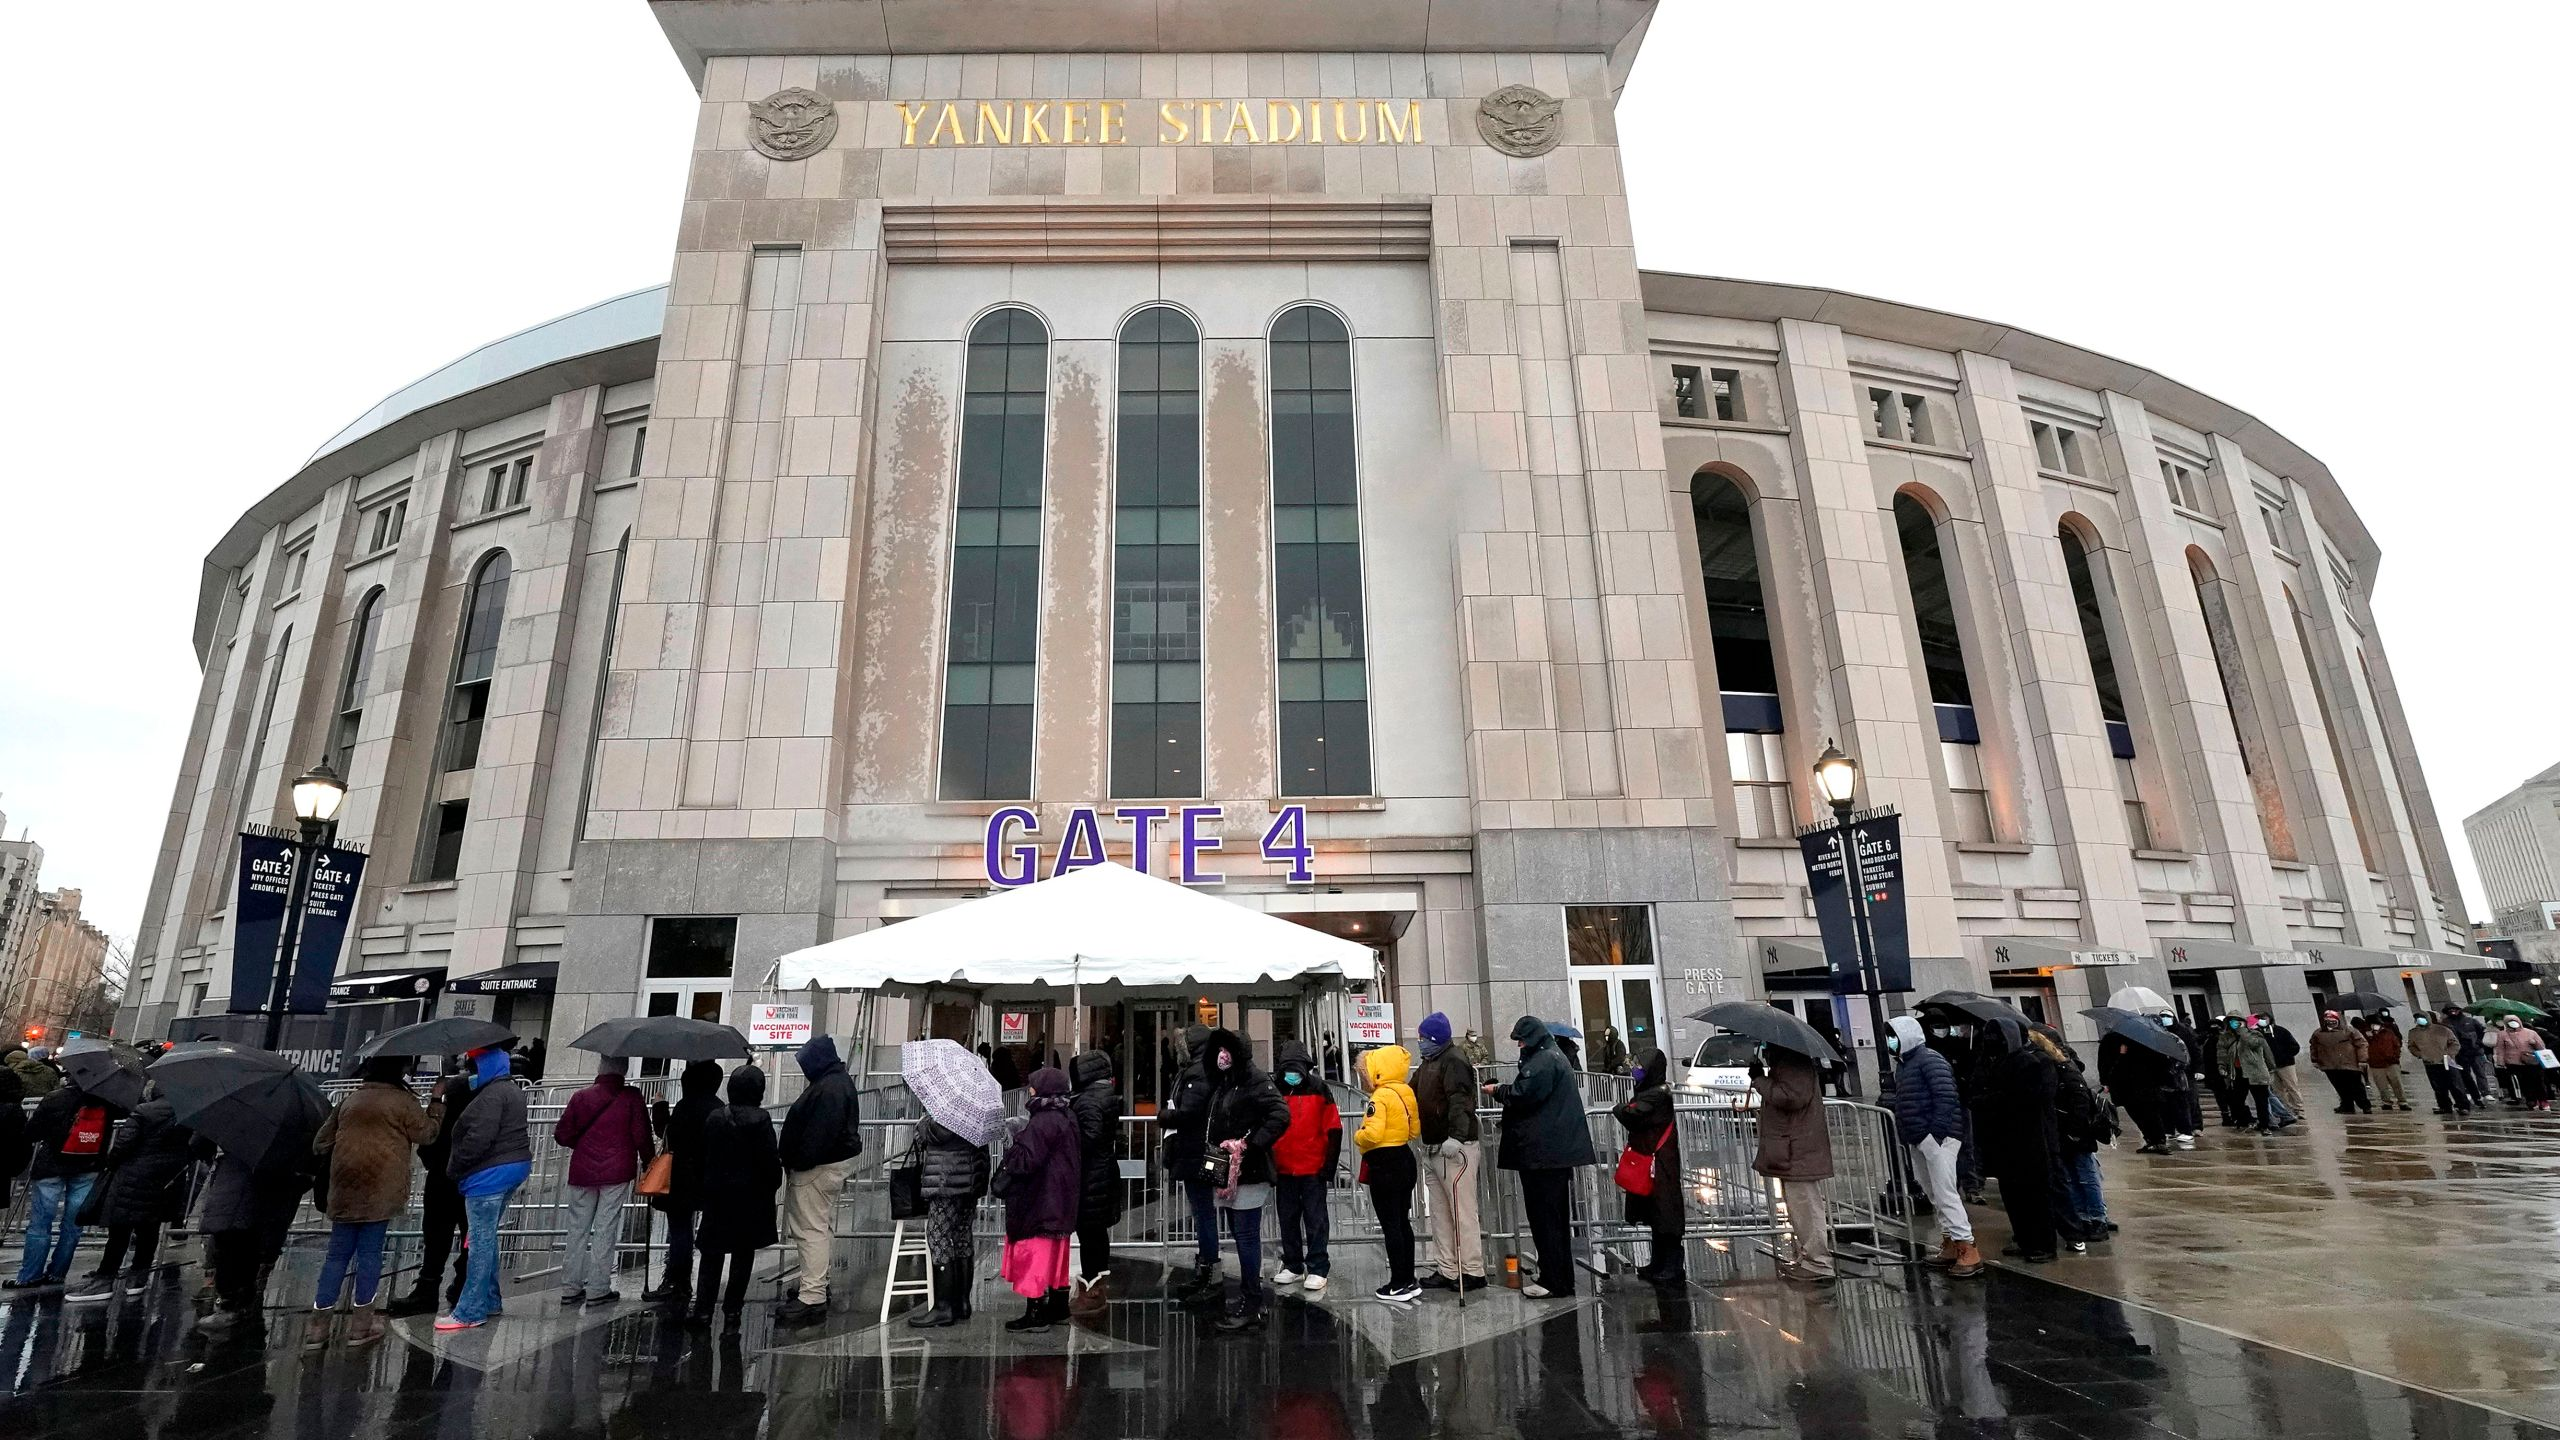 People line up in the rain outside the Yankee Stadium on February 5, 2021 in New York as the Stadium is turned into a mass Covid-19 vaccination site, which is strictly reserved for residents of The Bronx. (Photo by TIMOTHY A. CLARY / AFP) (Photo by TIMOTHY A. CLARY/AFP via Getty Images)